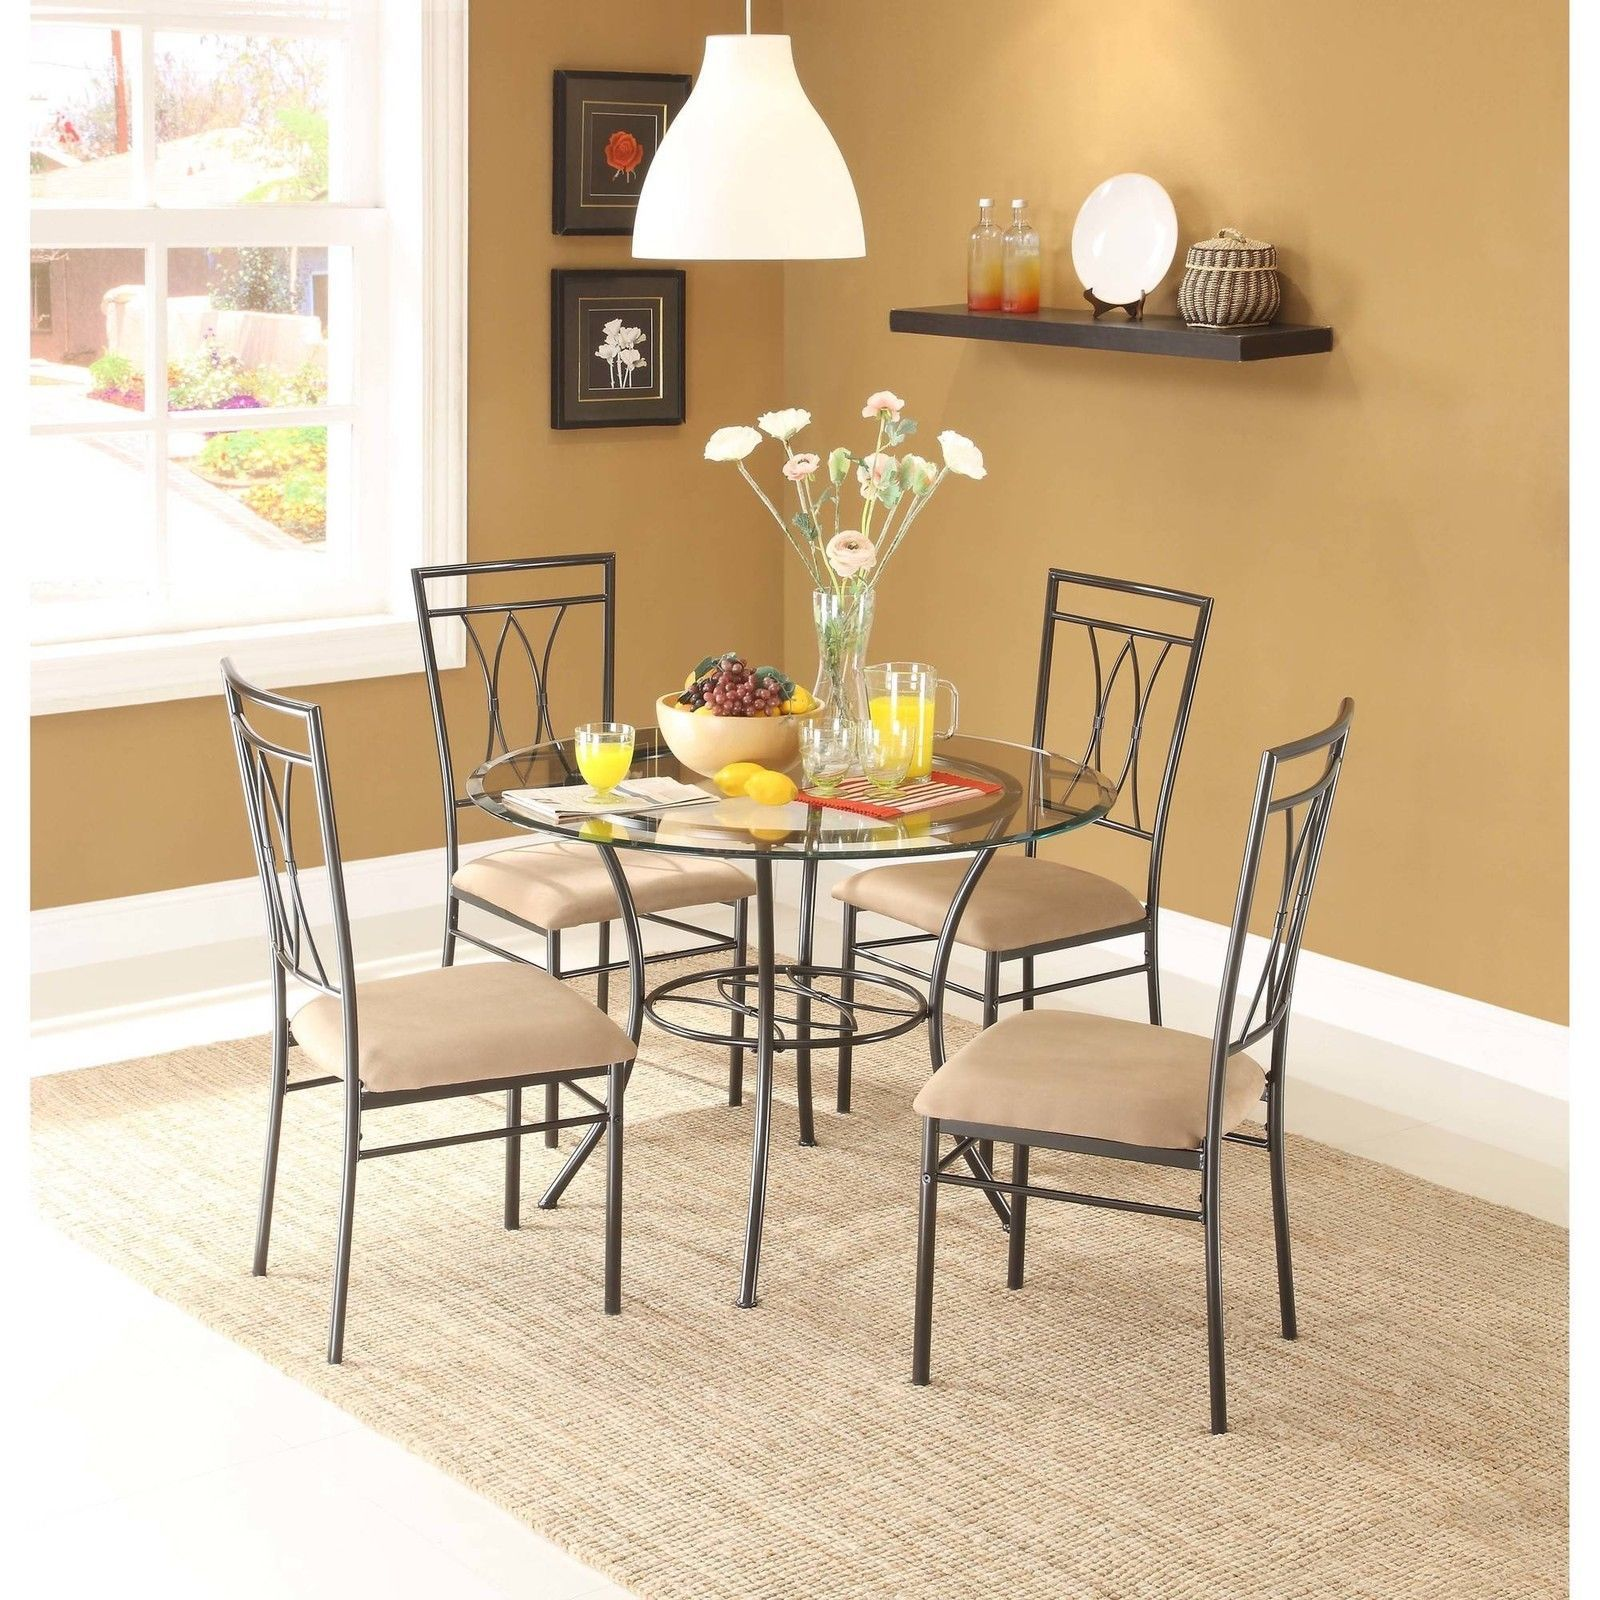 Mainstays 5 piece glass and metal dining set dining sets for Glass dining set